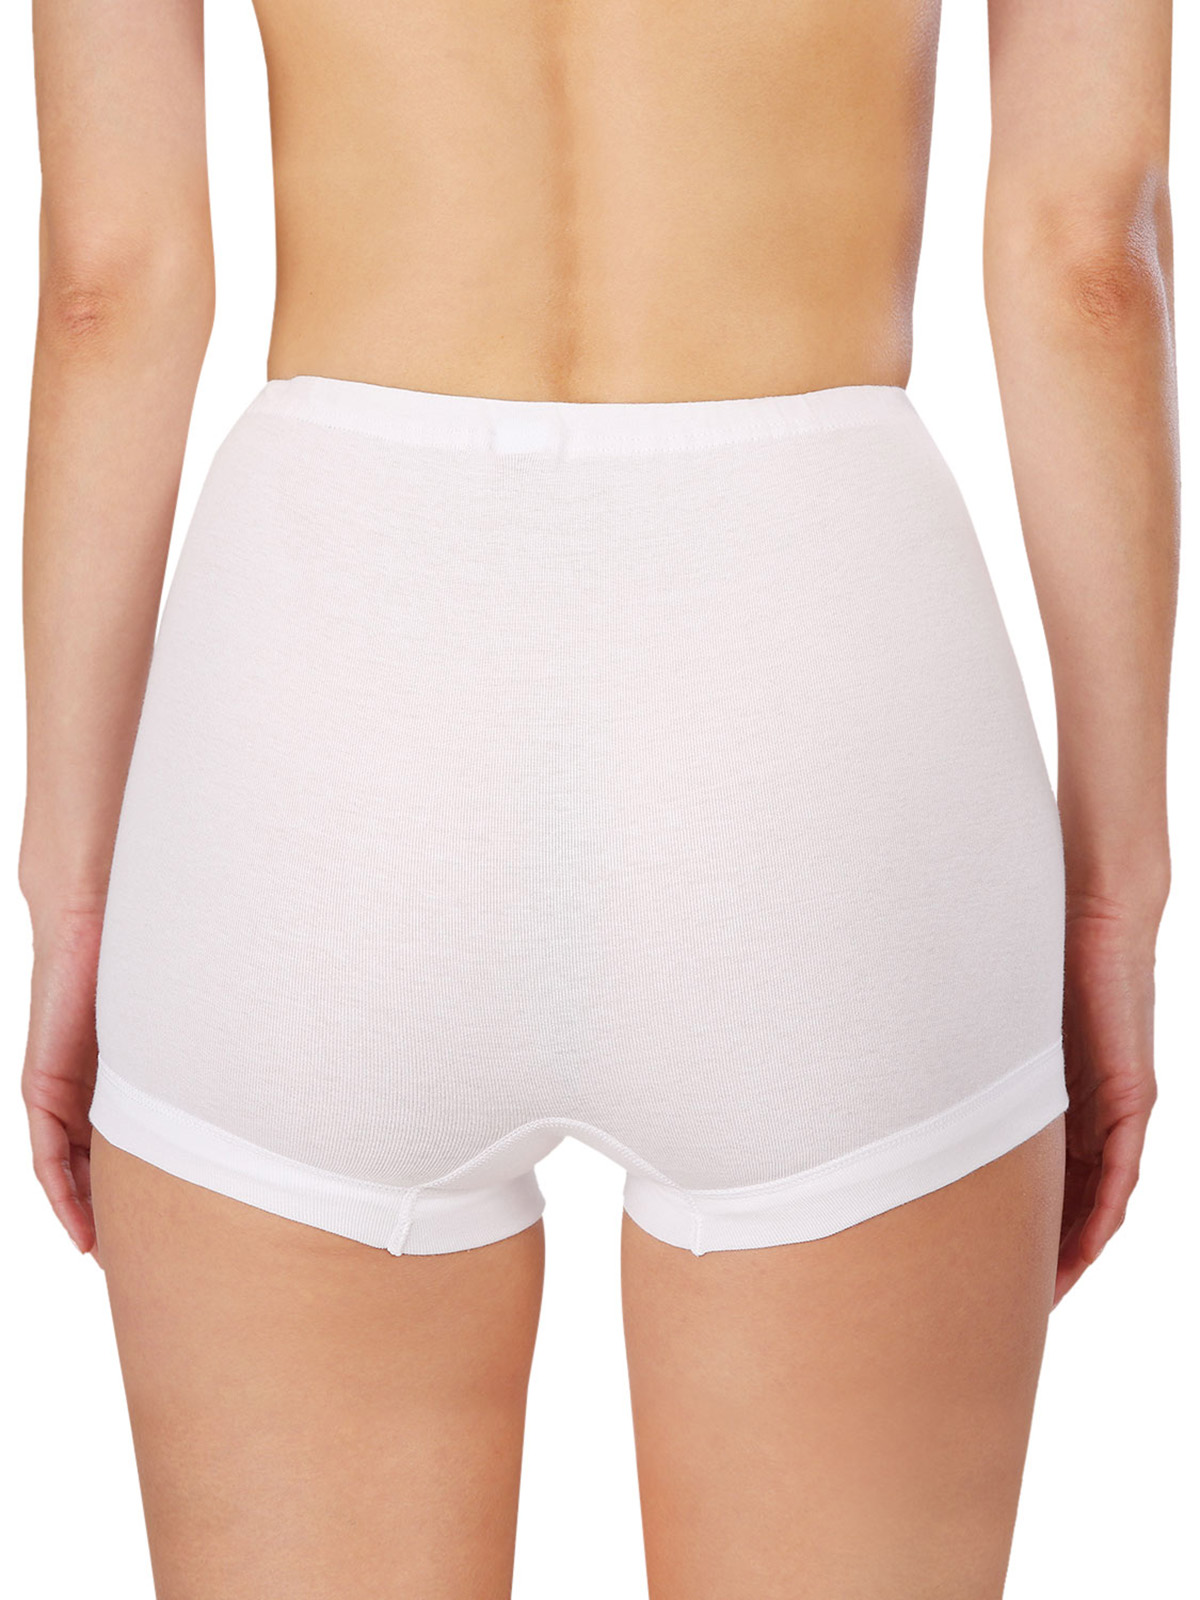 Naturana Women's Shorts Panties 2201